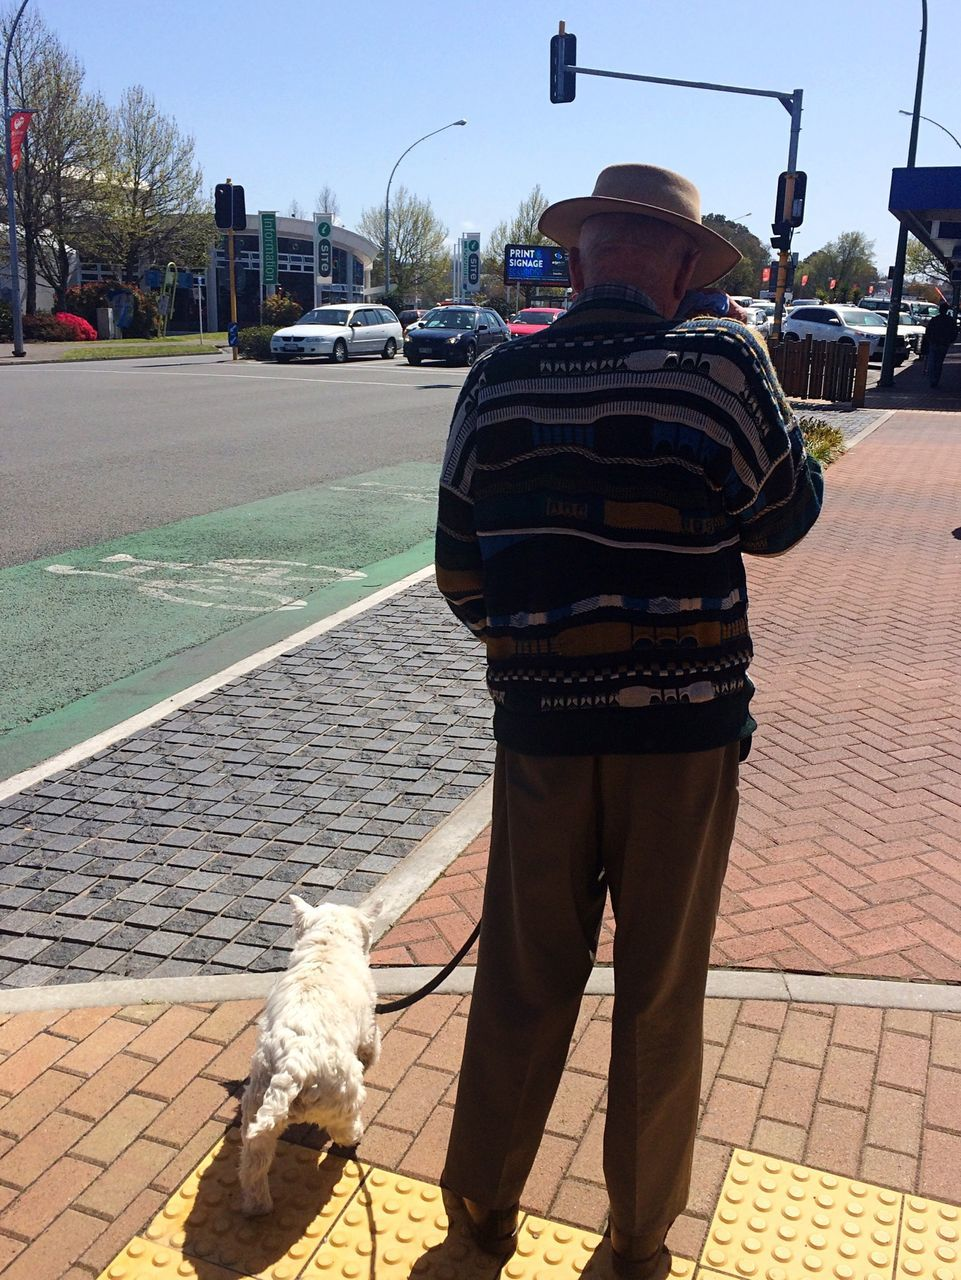 dog, rear view, pets, real people, one animal, domestic animals, mammal, outdoors, day, standing, full length, street, one person, men, lifestyles, road, city, sky, people